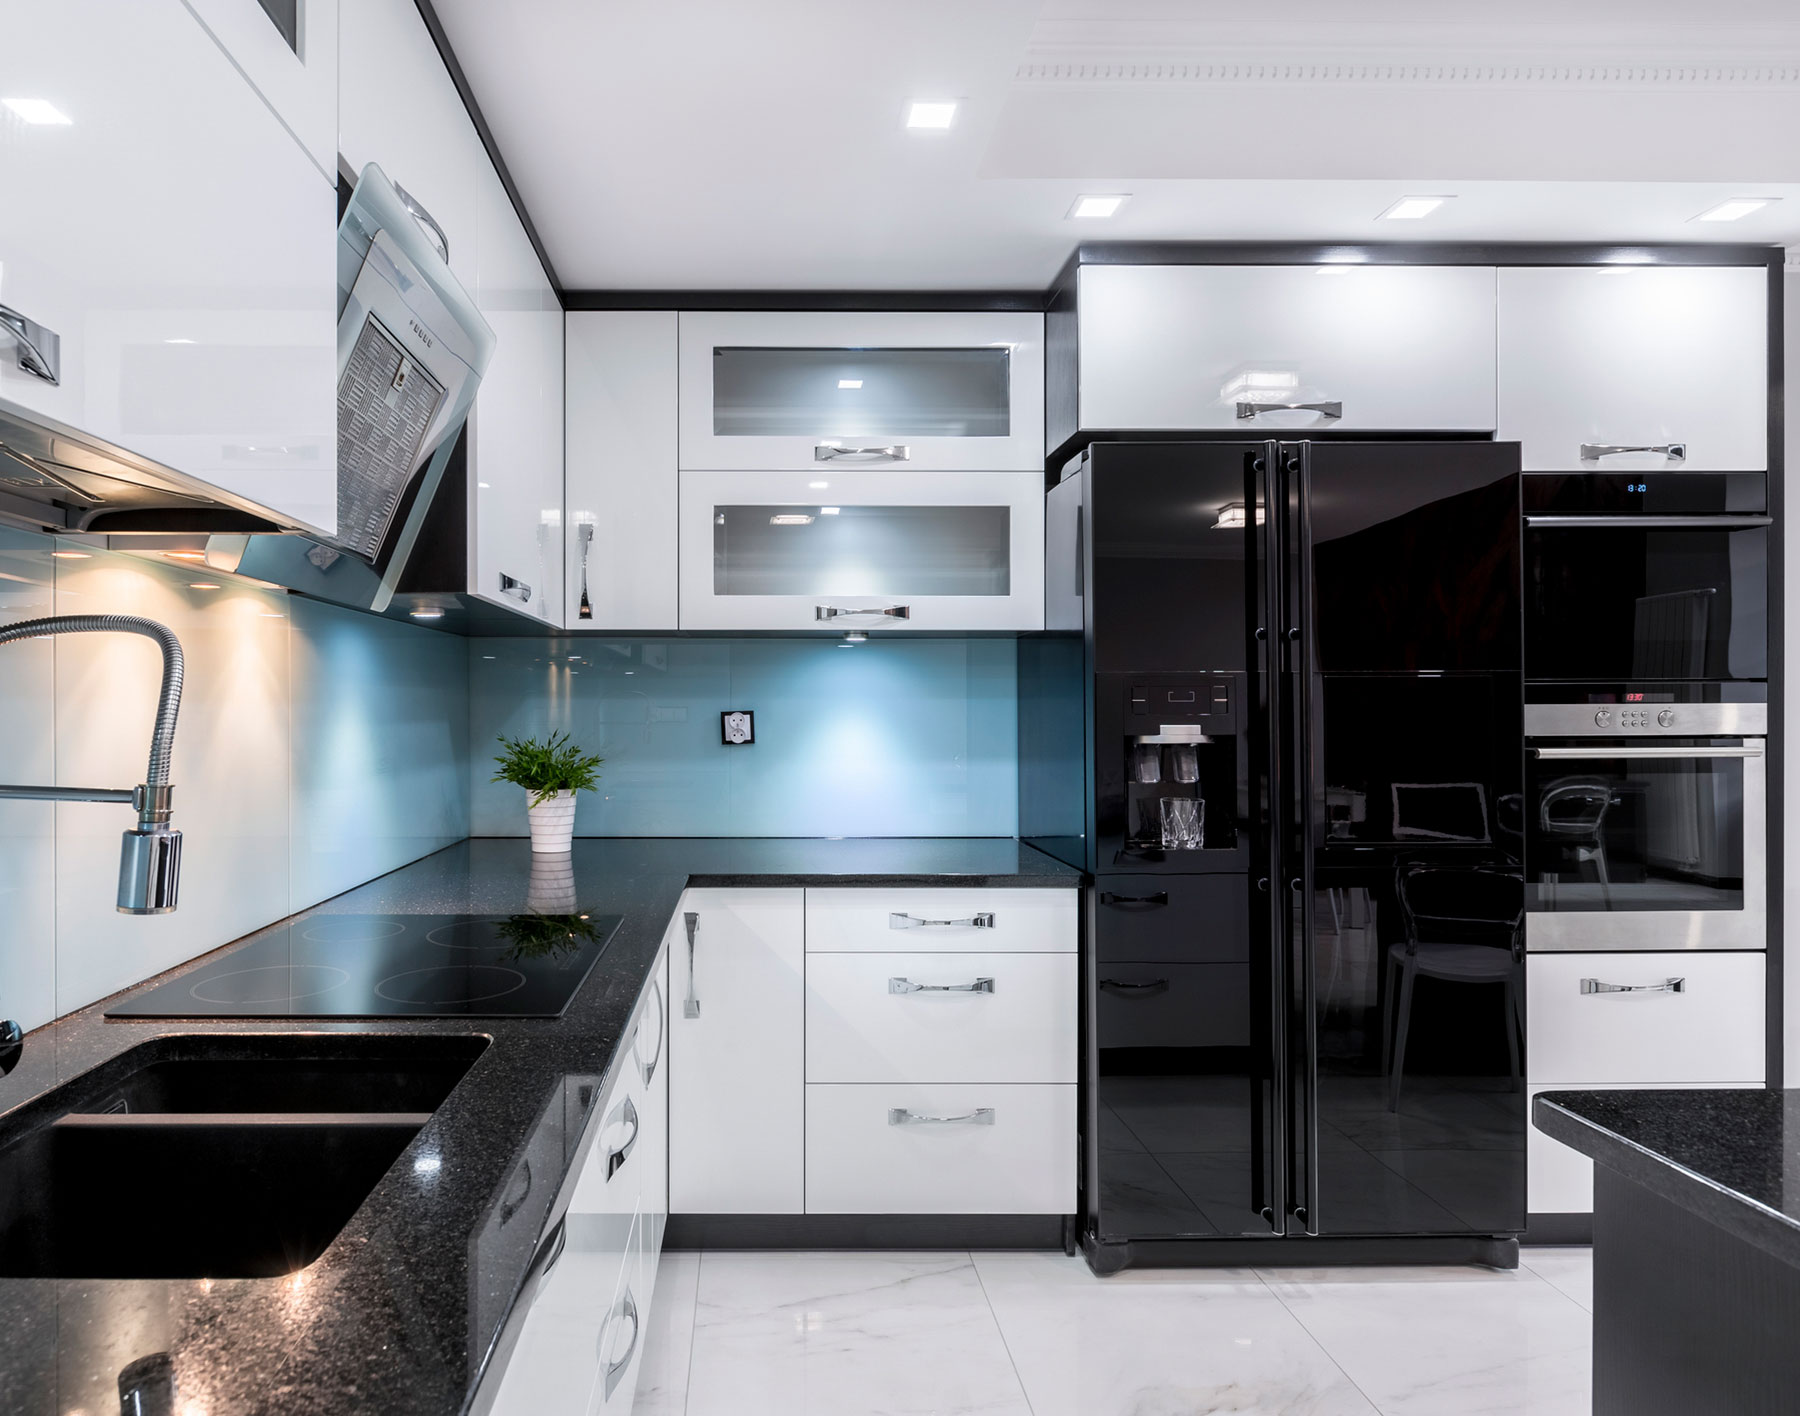 Black Stainless Steel Appliances Are The Hot Kitchen Trend We Ve